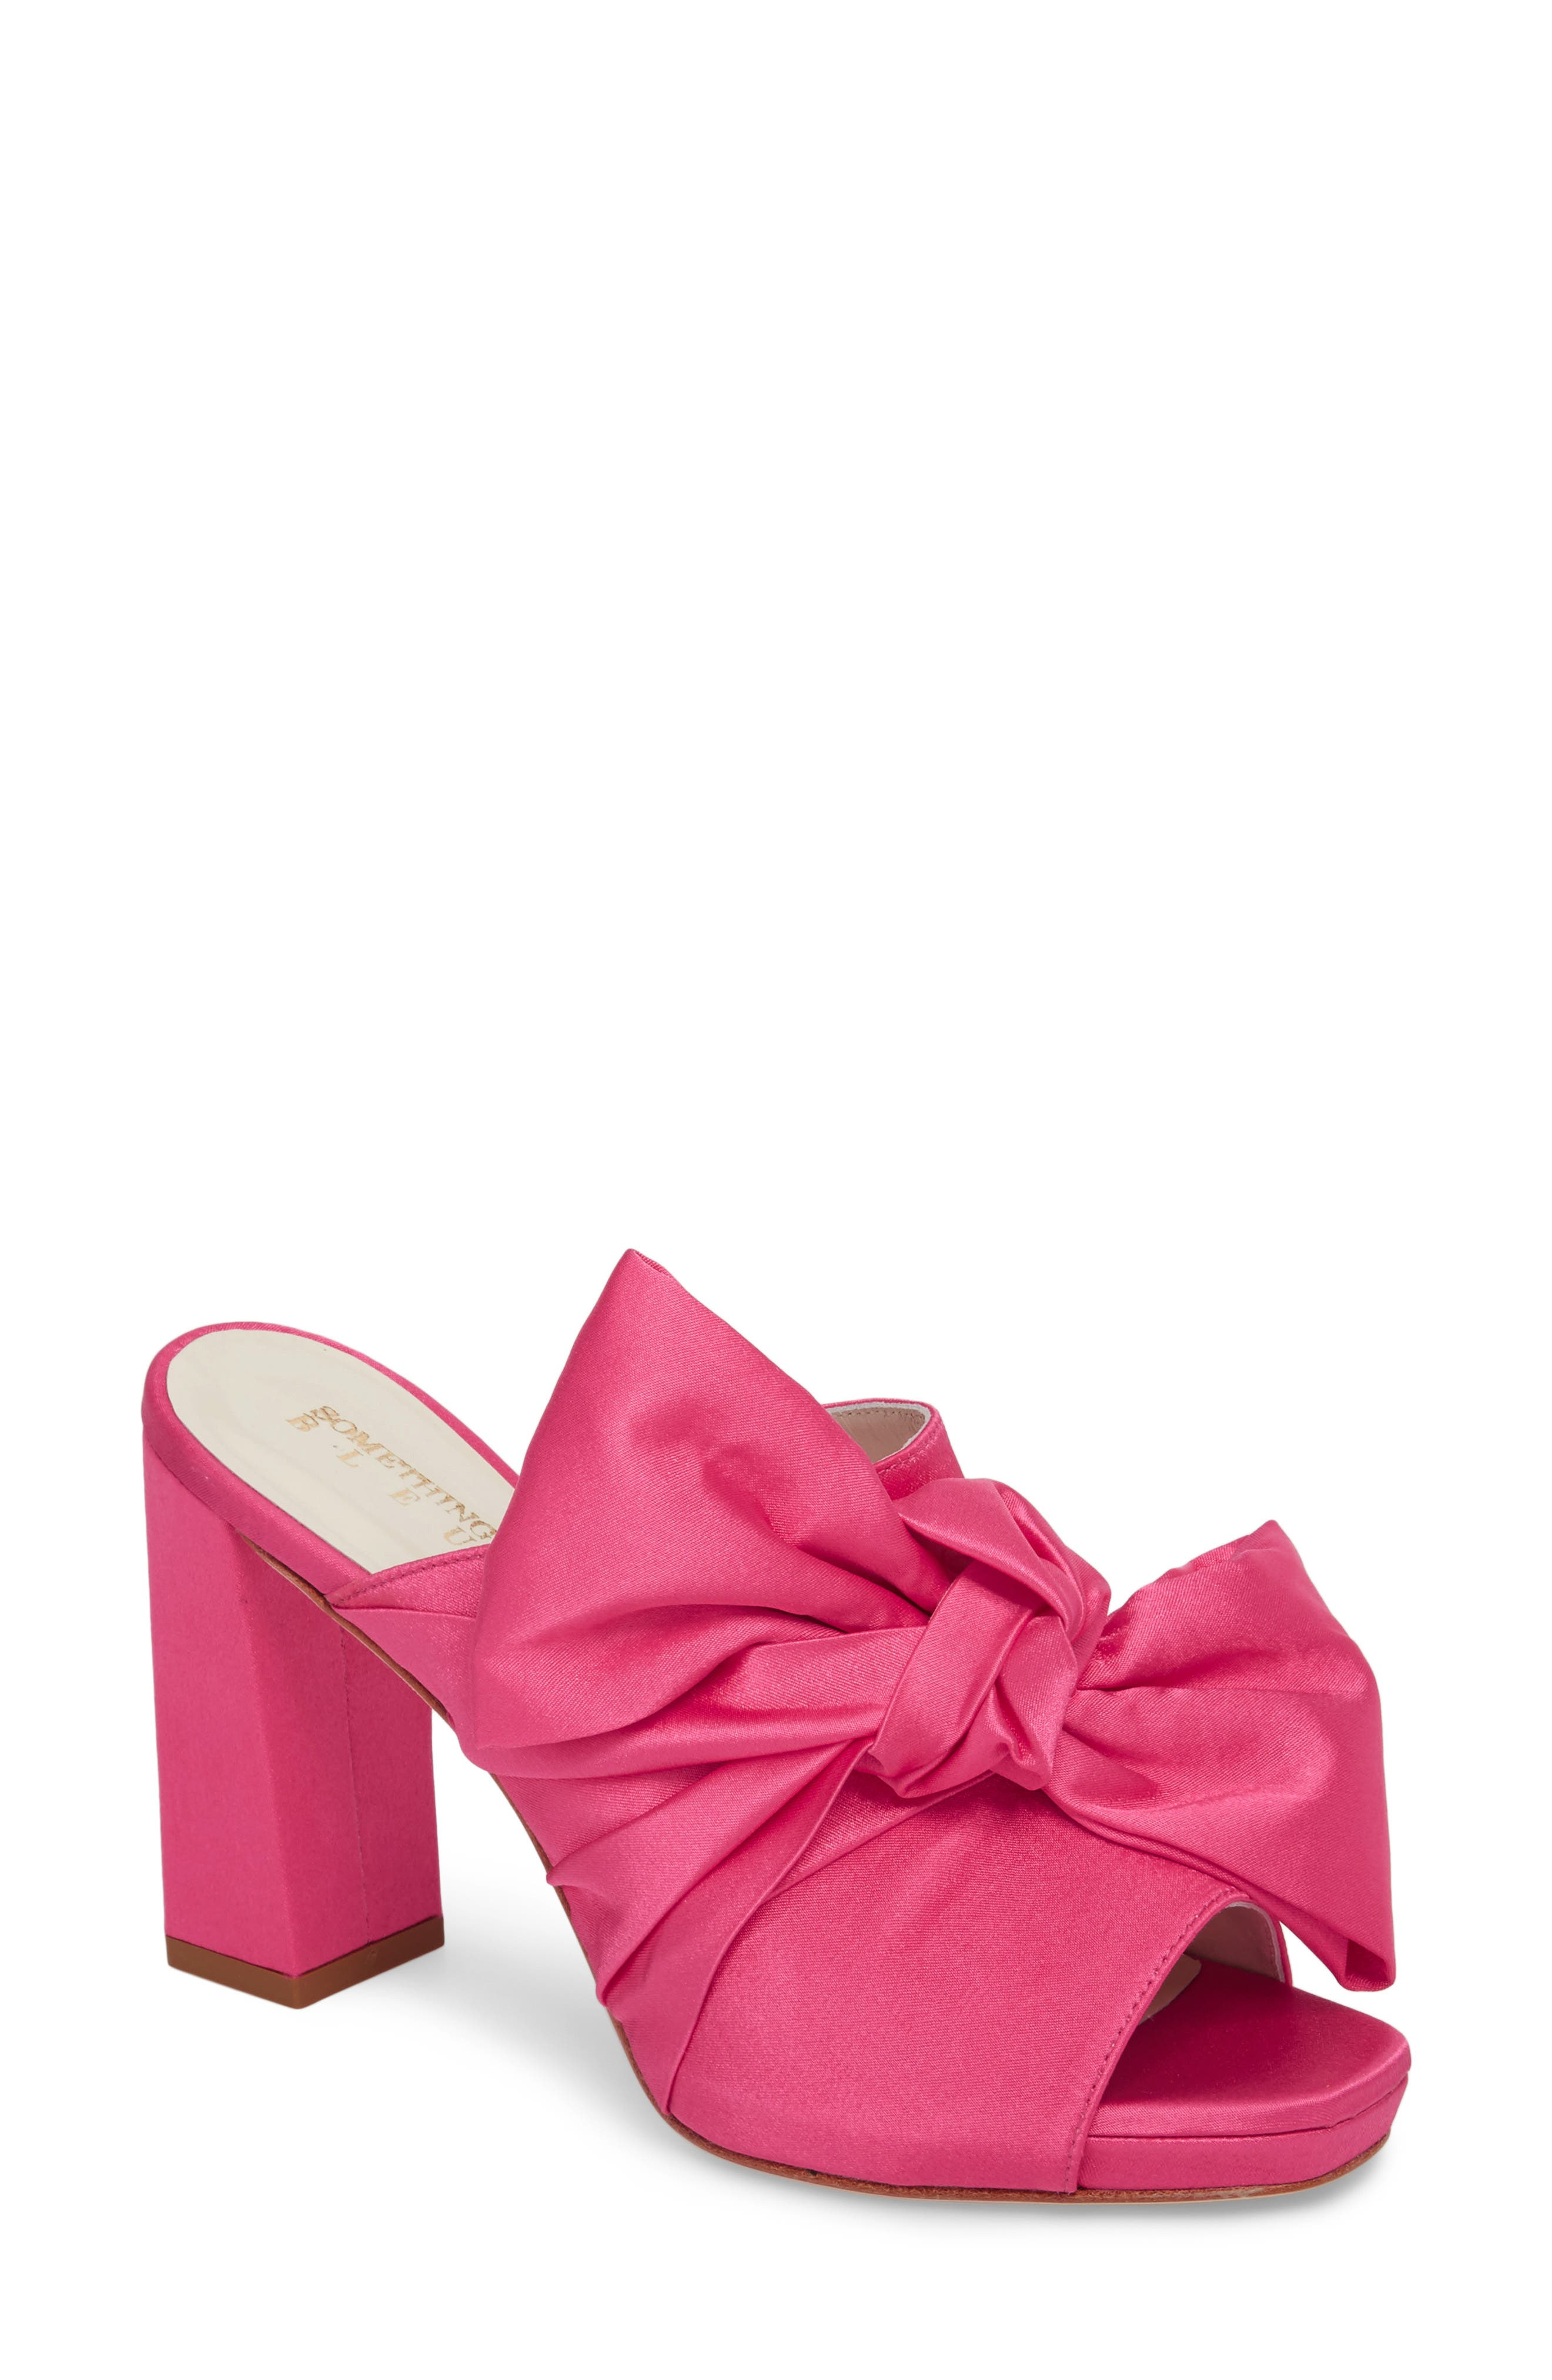 Elisa Knotted Bow Mule,                         Main,                         color, Hot Pink Satin